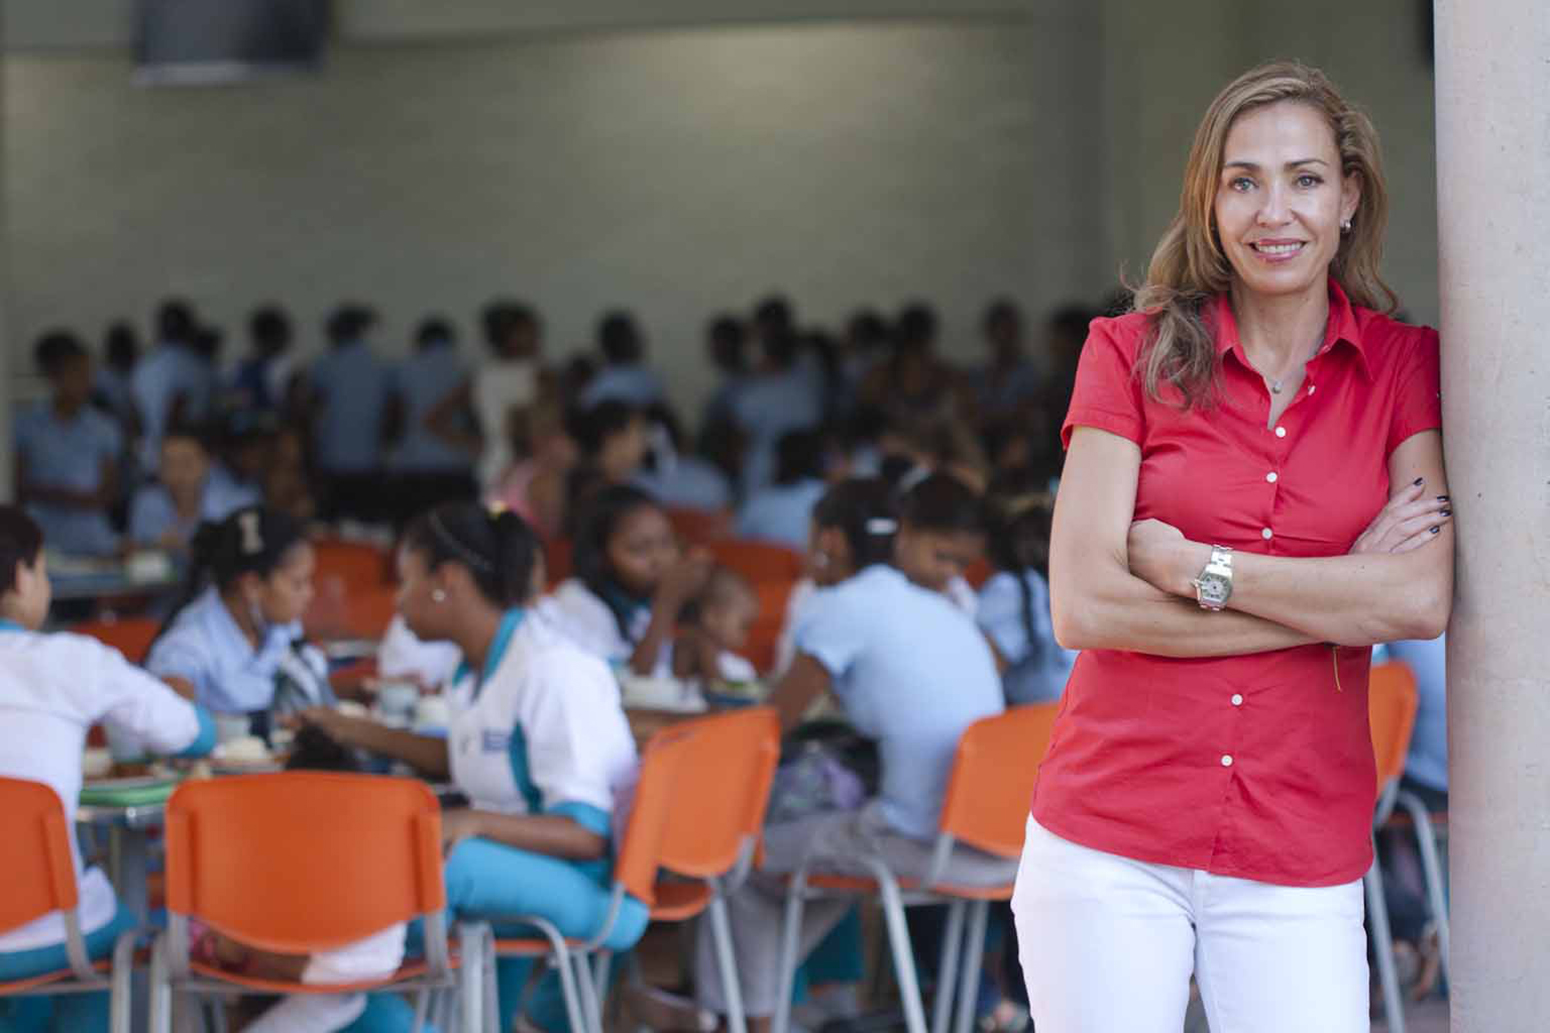 Esteemed social entrepreneur Catalina Escobar '93 will speak at Clark's Commencement, May 22. She is pictured here at the Juanfe Foundation in Colombia, which she created and directs.